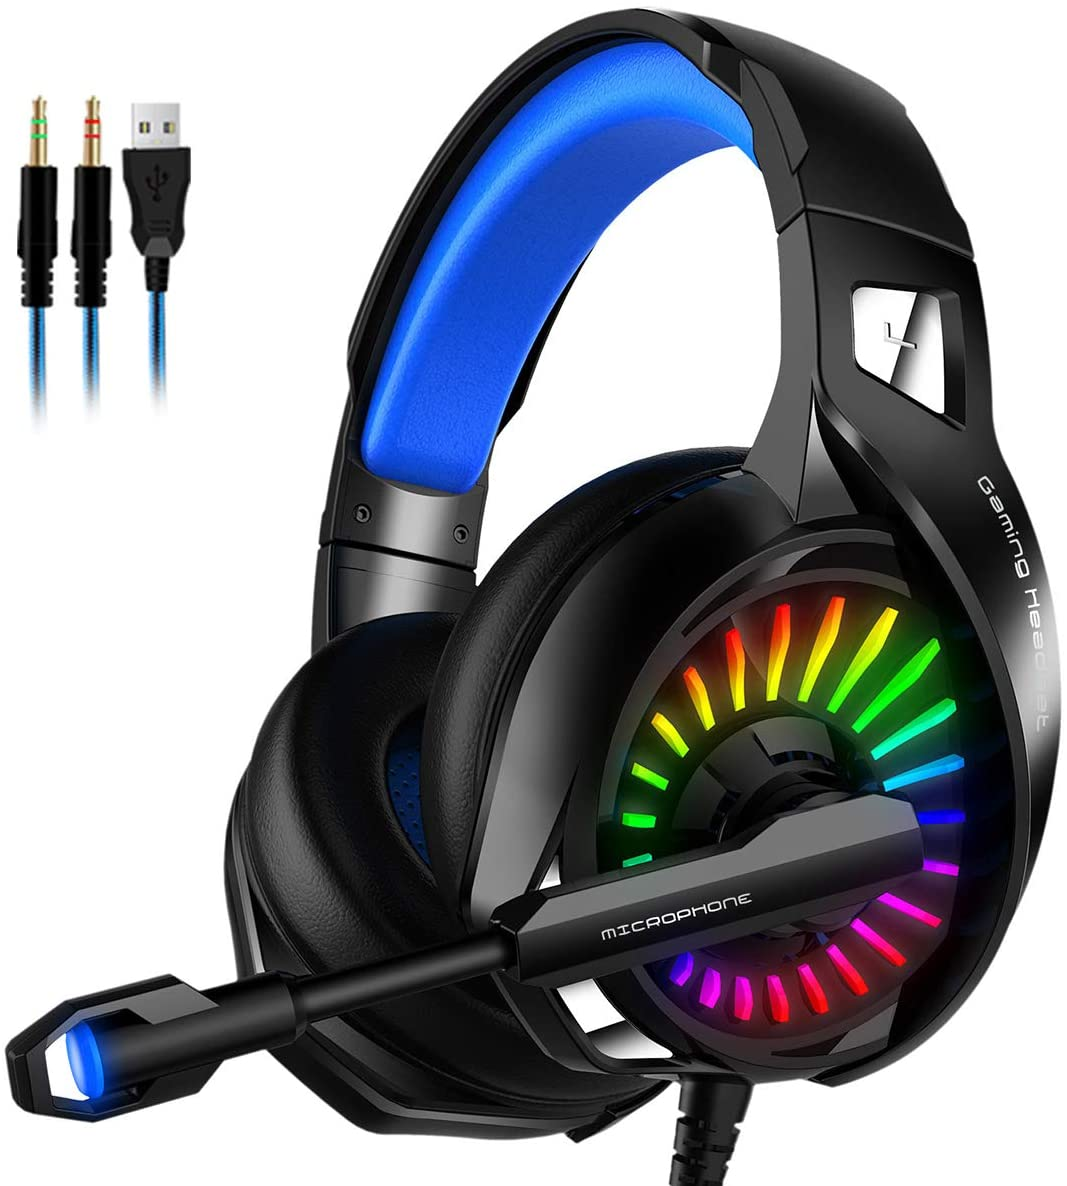 Haokaini Stereo Gaming Headset, Over Ear Headphones with Mic, LED Light, Bass Surround, Noise Cancelling, Soft Memory Earmuffs Compatible with PS4 PC Xbox One Controller Laptop Nintendo Switch Games